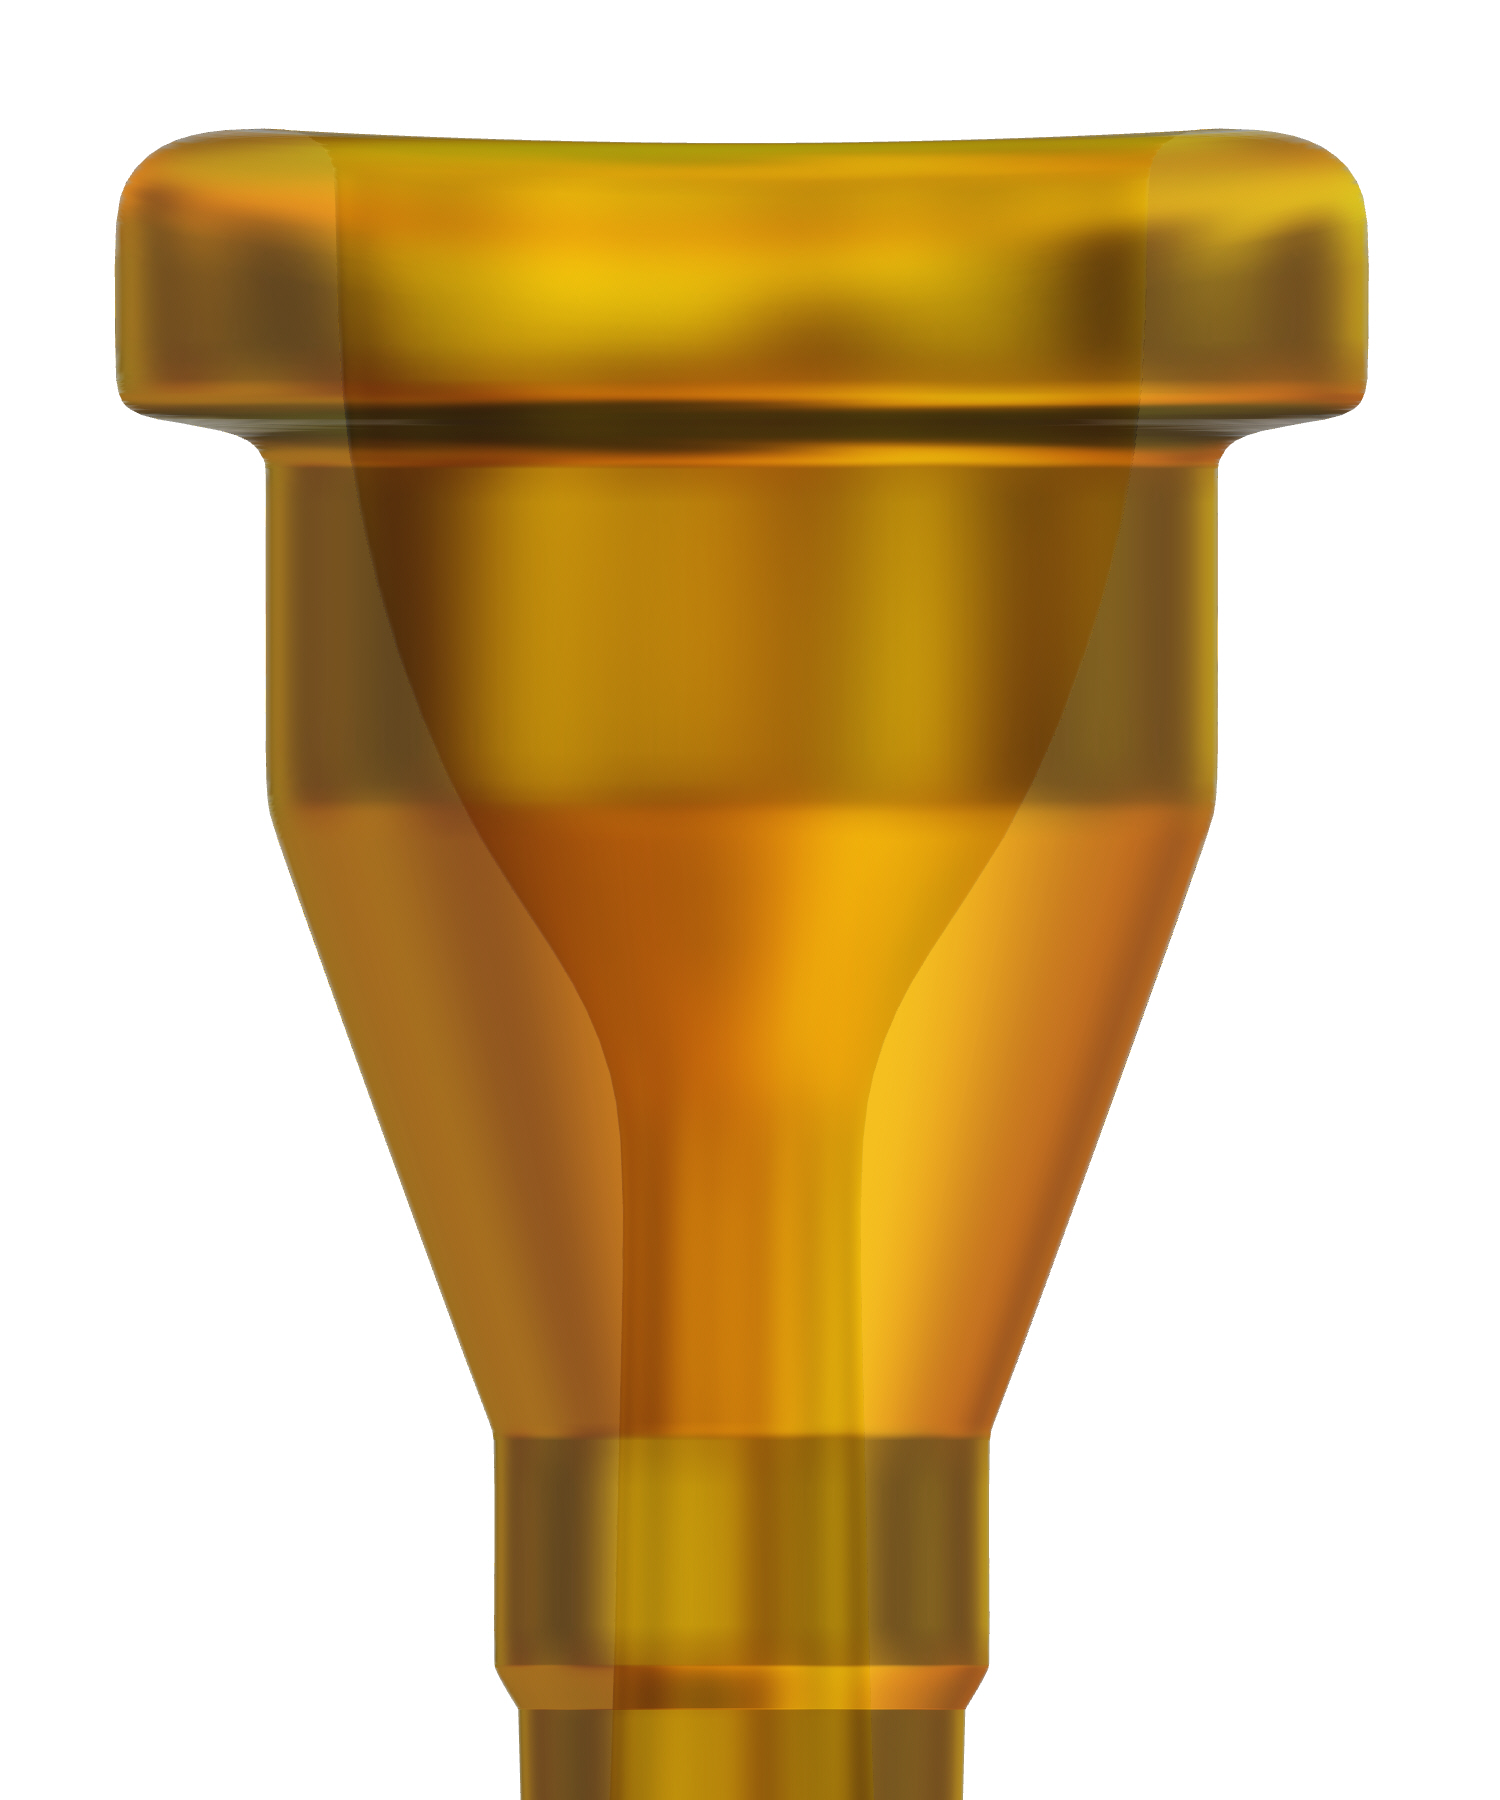 euph-cup-gold.jpg